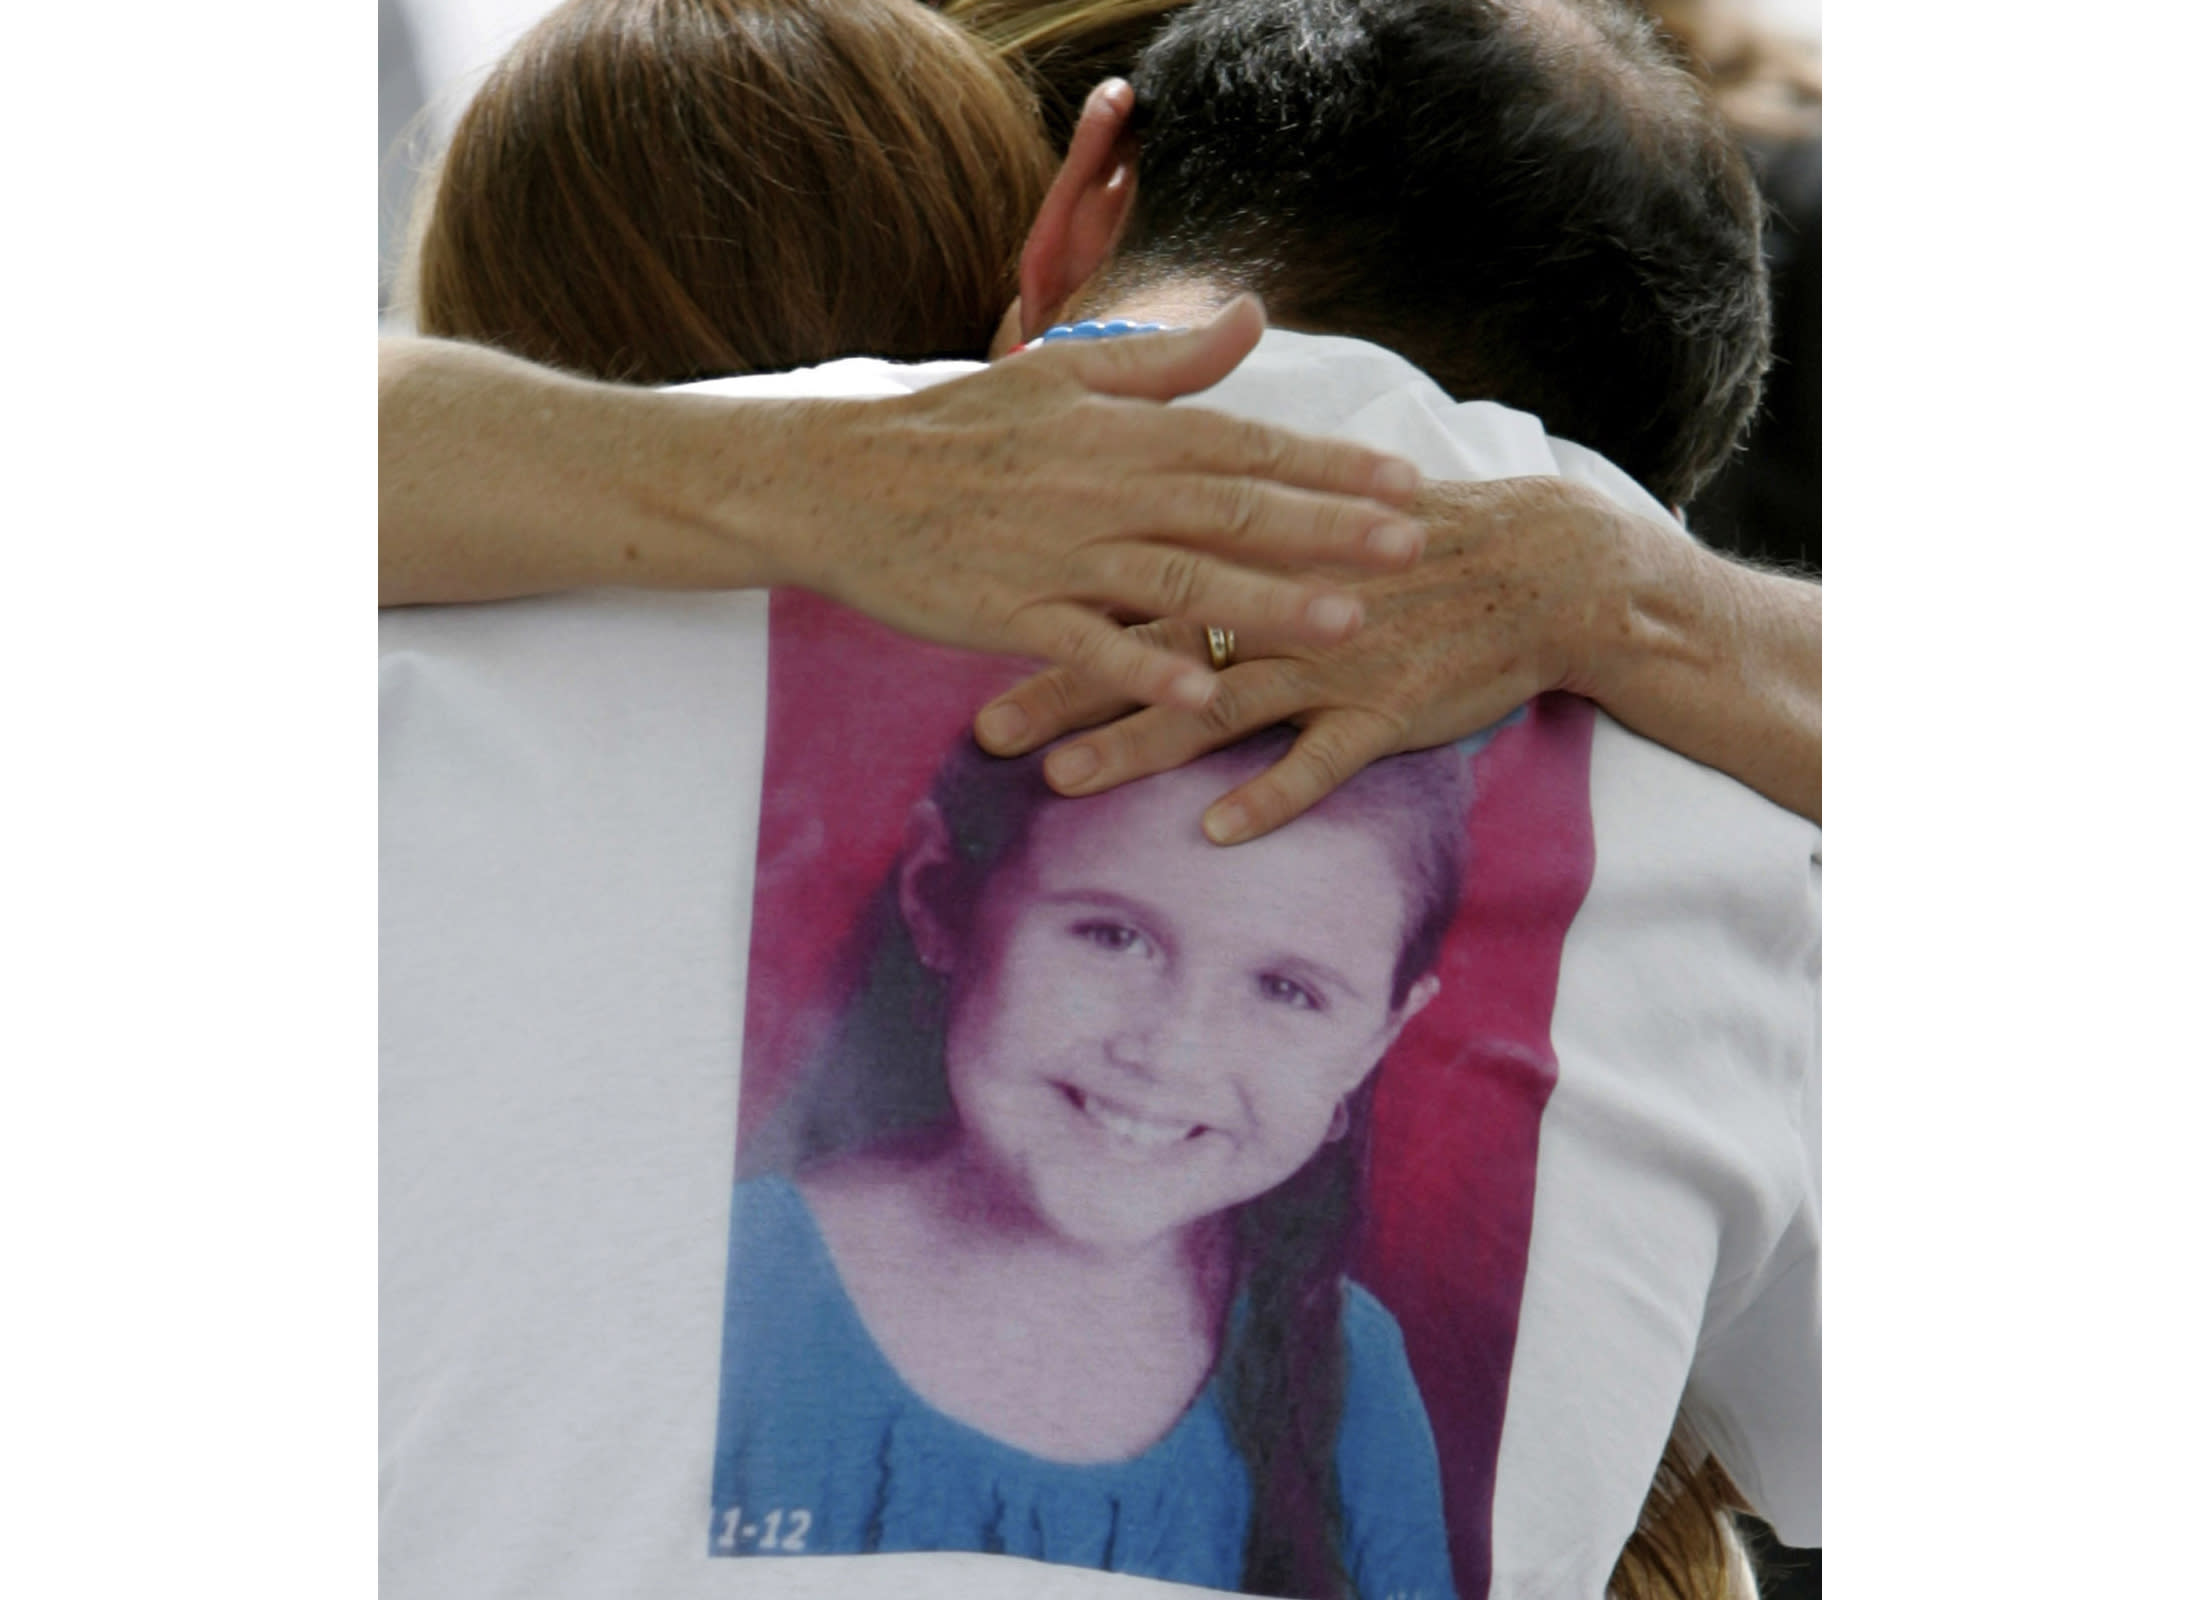 Man charged with killing 2 Arizona girls who went missing